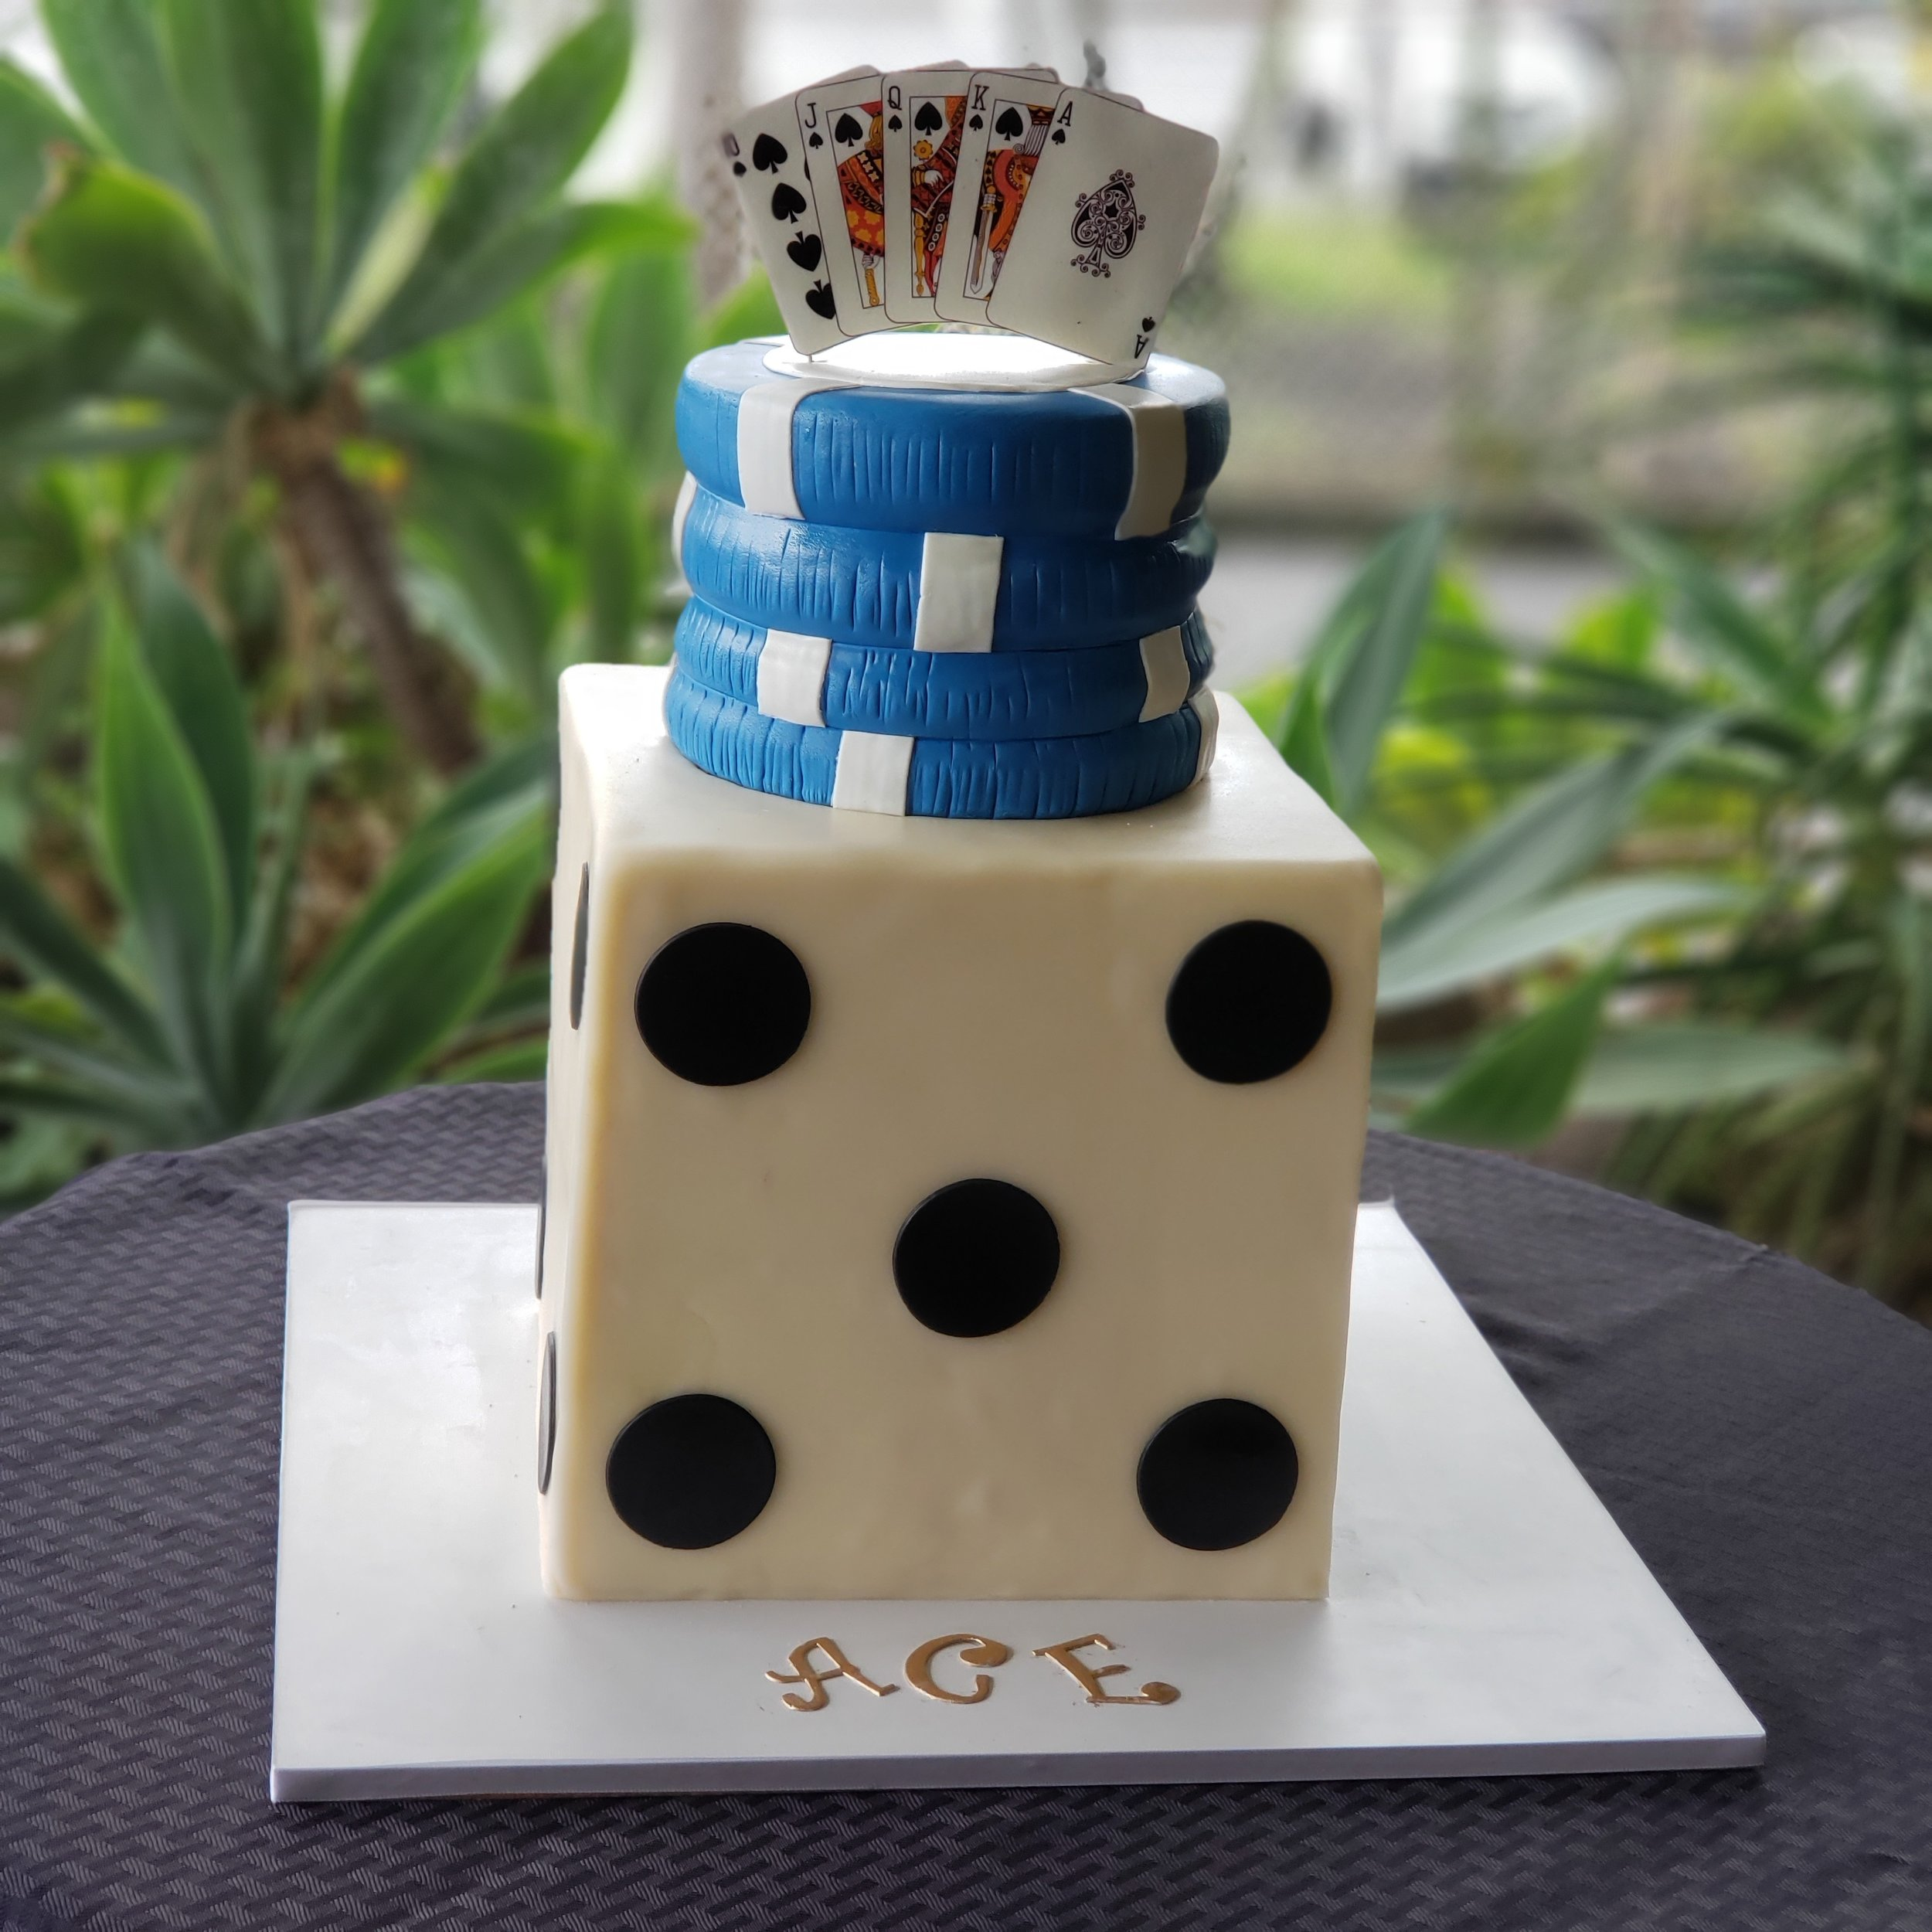 Copy of 3D sculpted Las Vegas theme birthday cake with dice, poker chips and sugar playing cards topper Hilo Hawaii Big Island Kailua-Kona